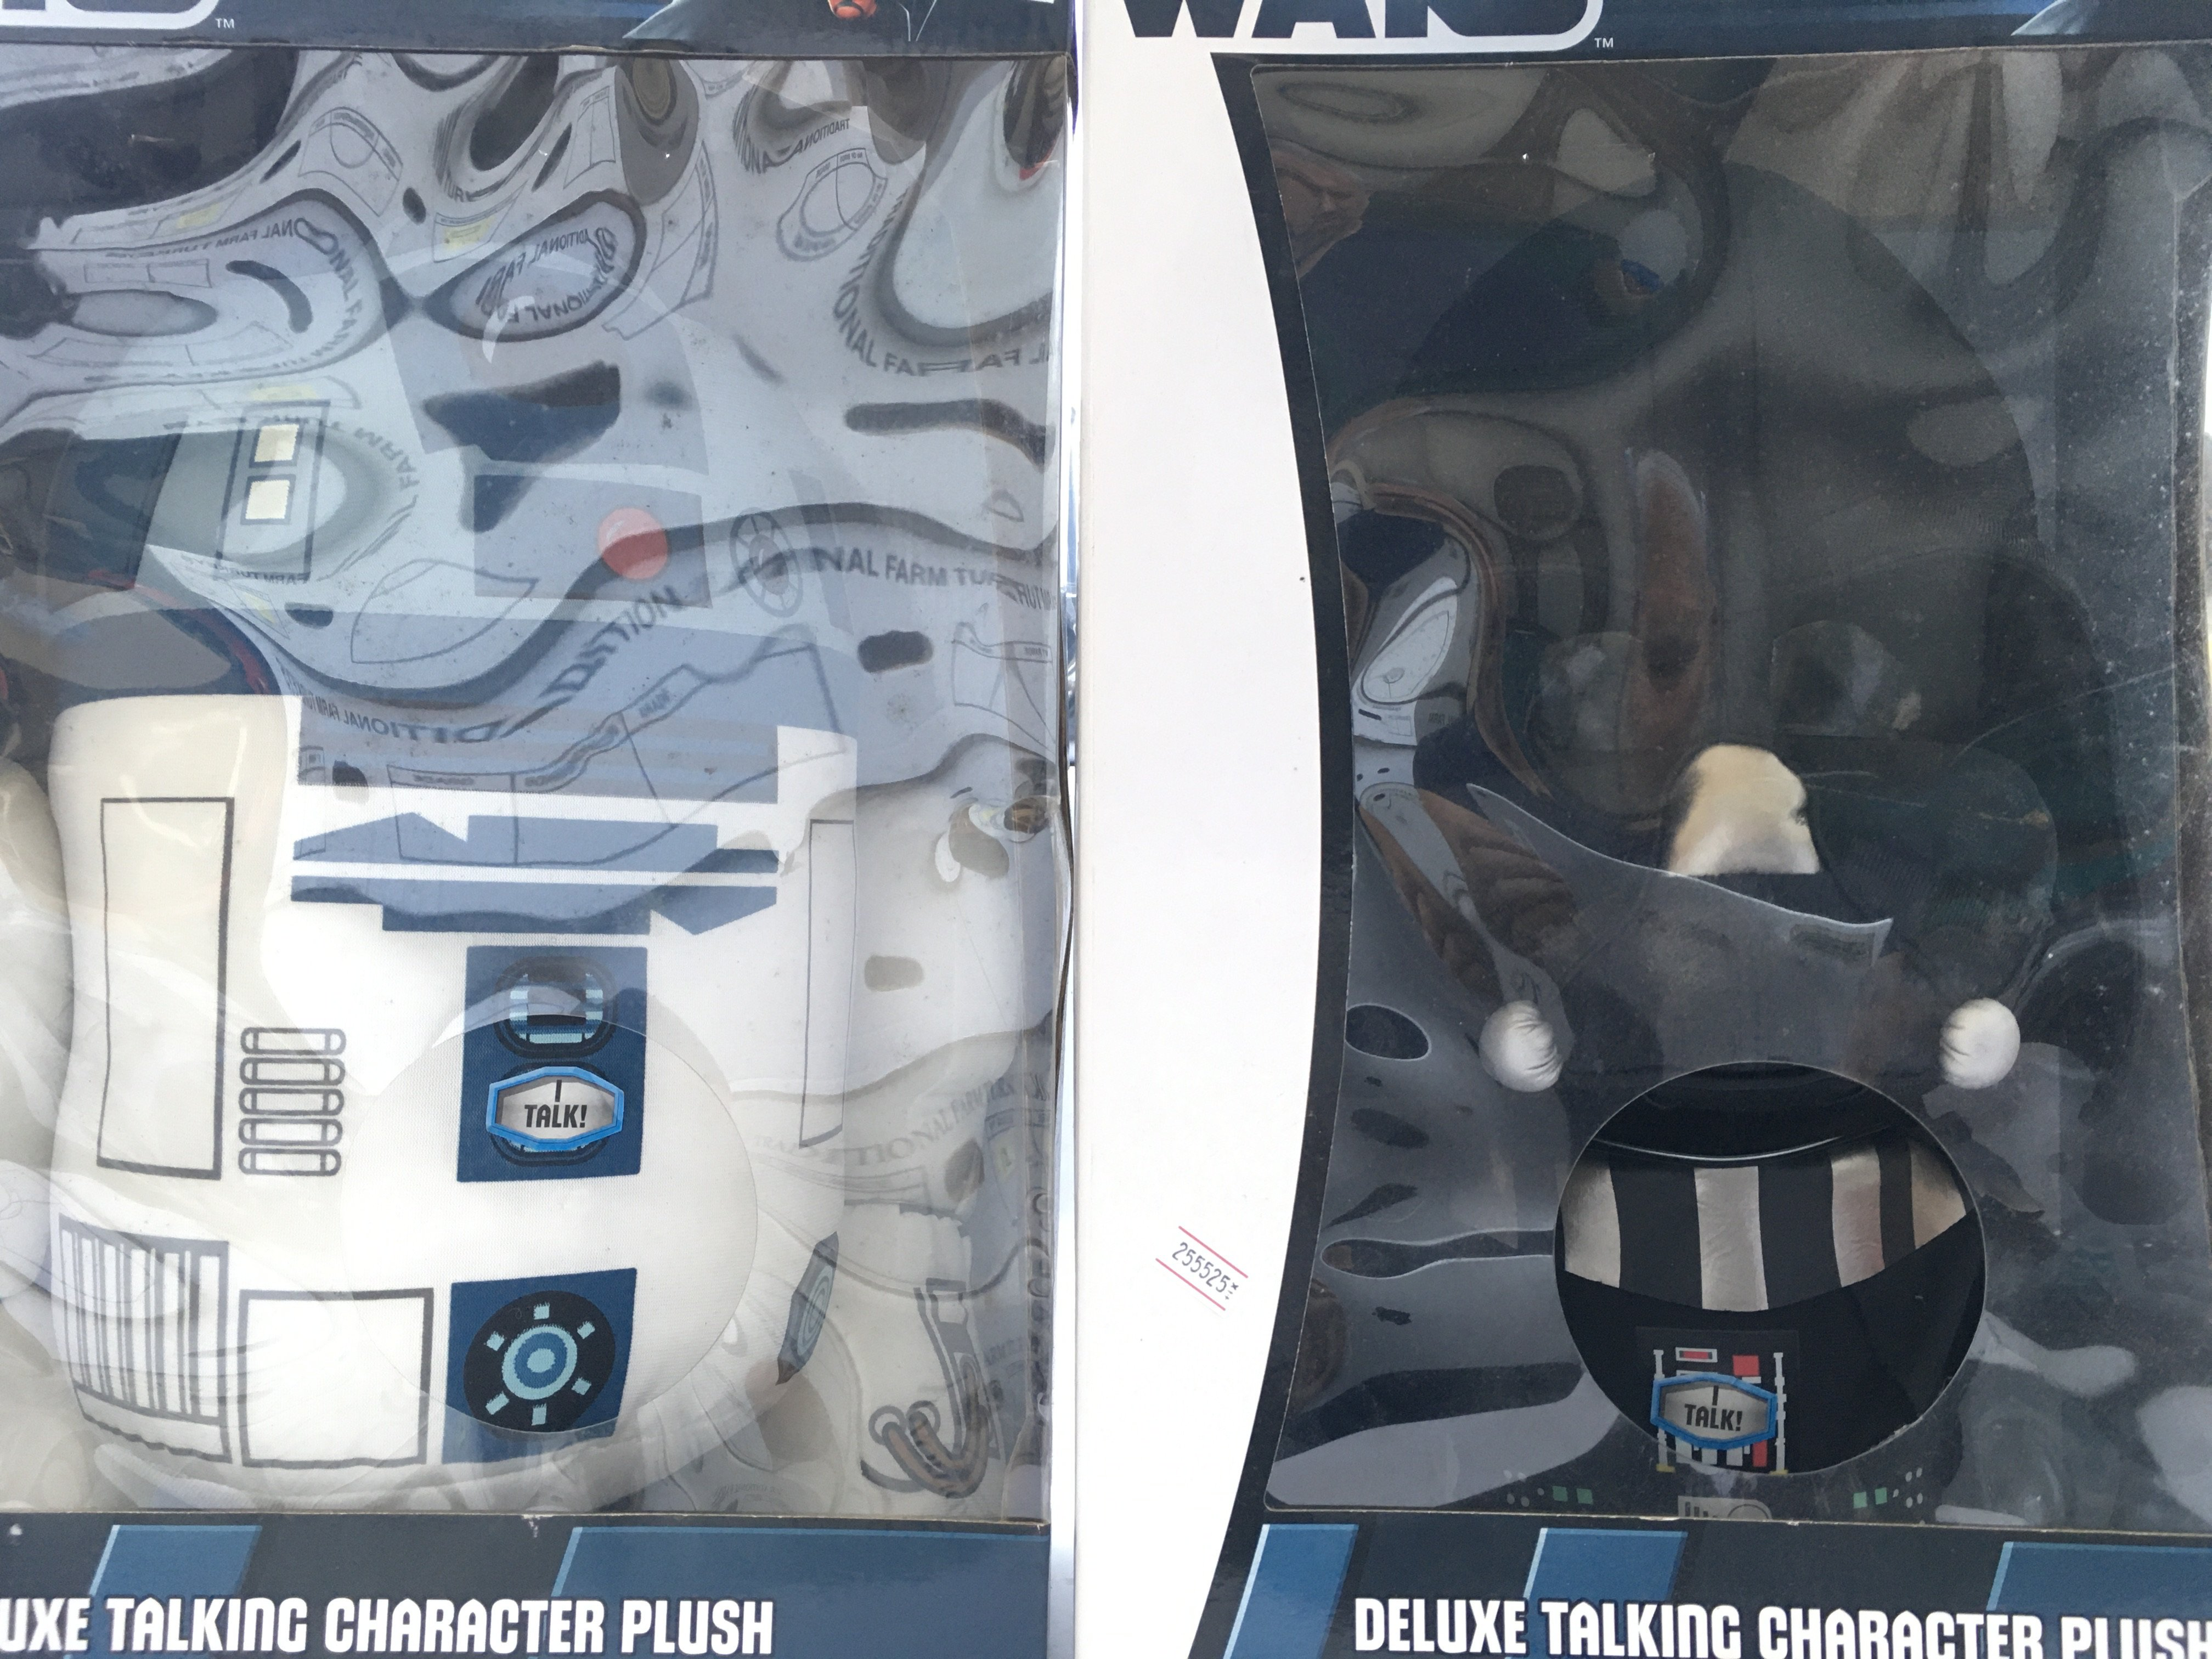 5 X Star Wars Deluxe Talking Character Plush. Incl - Image 2 of 3